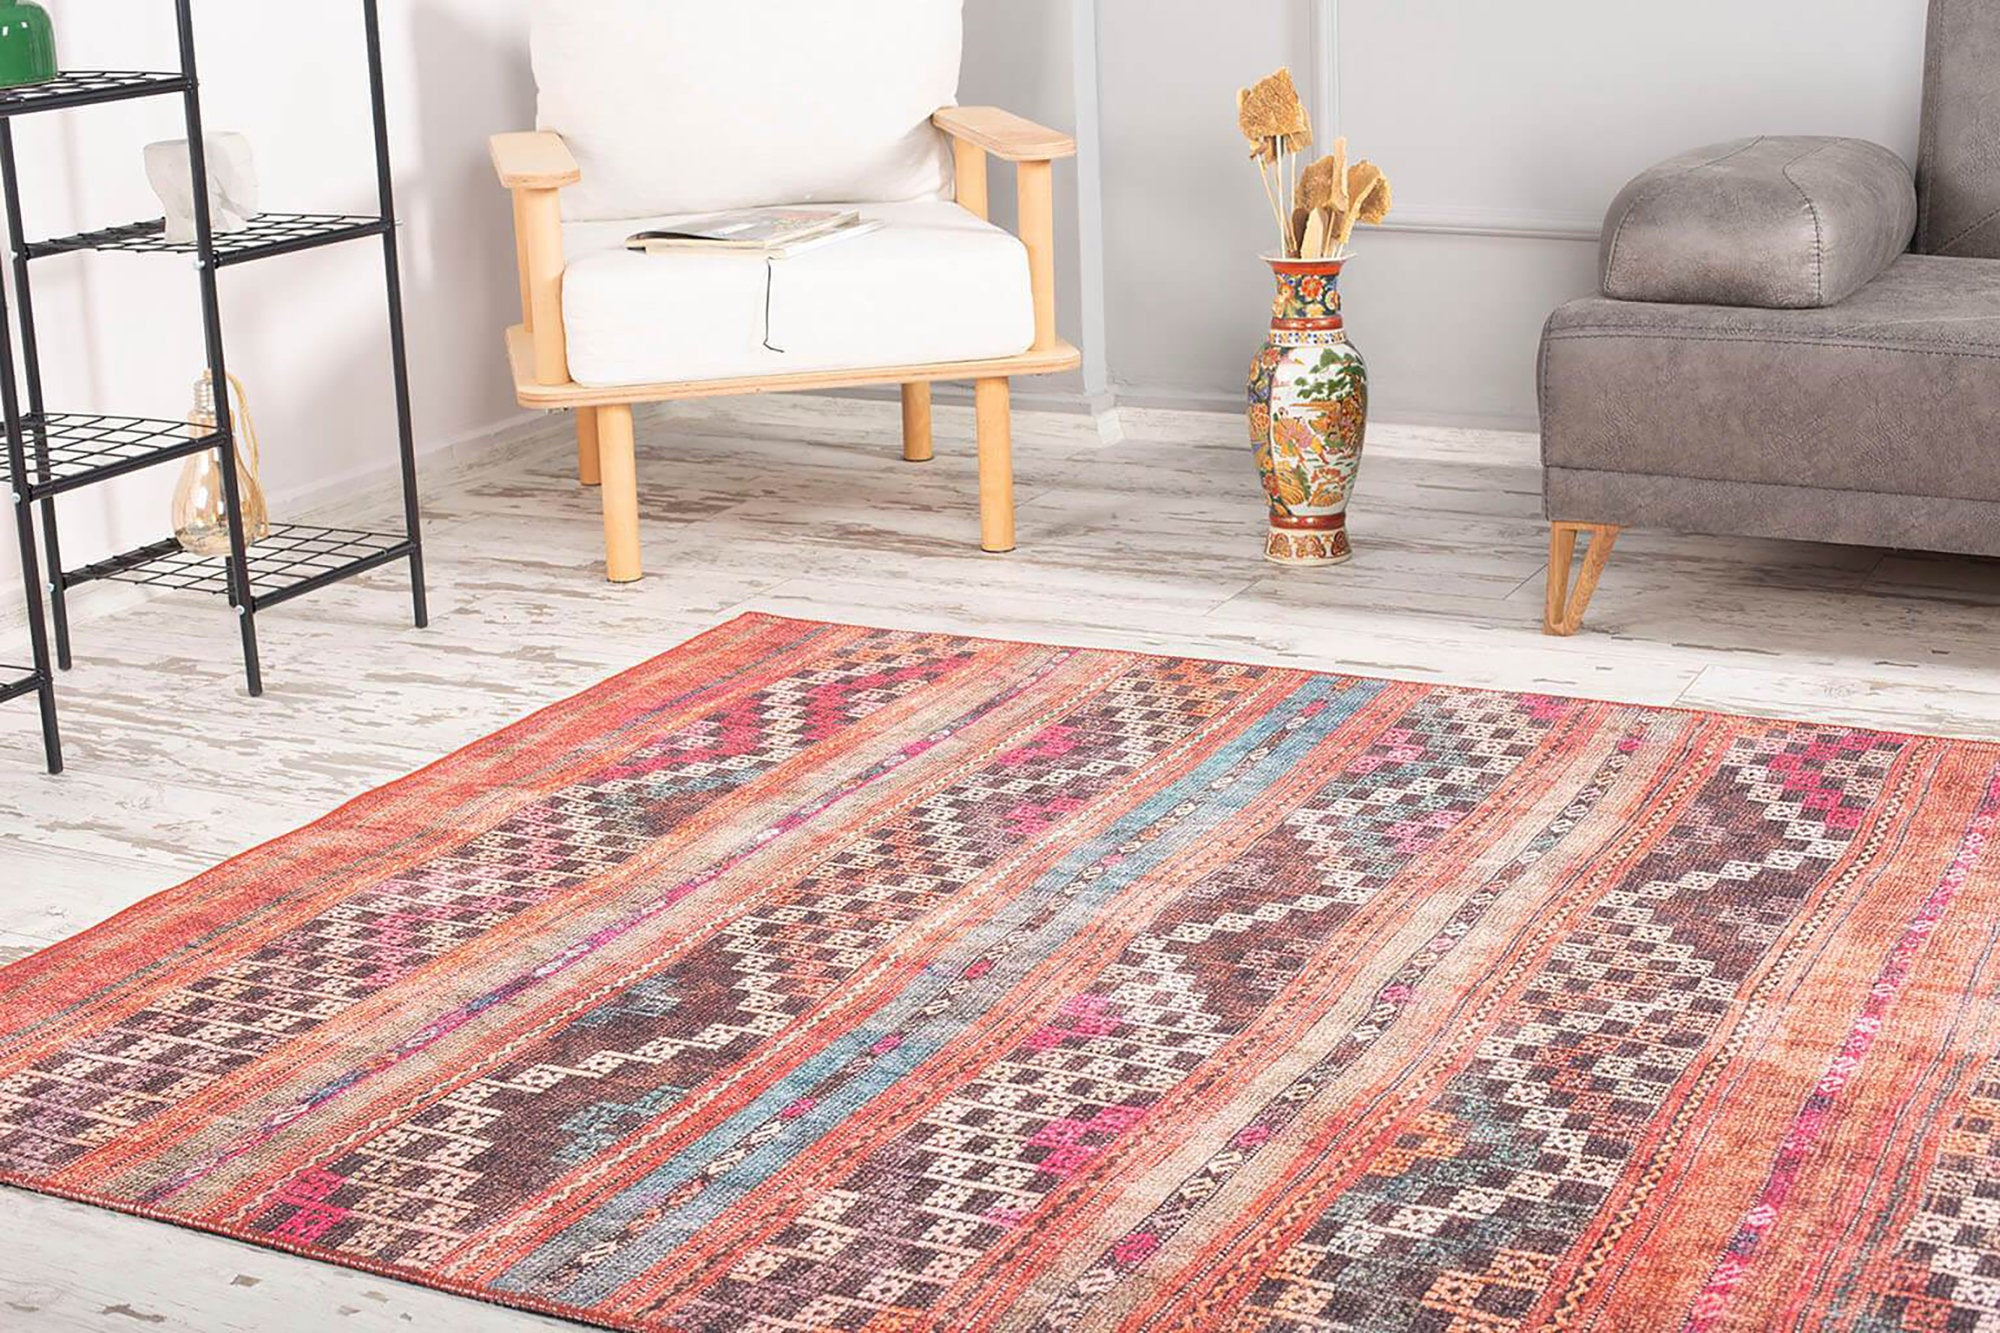 KALA | Kilim style Turkish rug, Red Orange Vintage look Faded Traditional Area rug, Bohemian Striped Mid-century Floor Decor Diamond Carpet